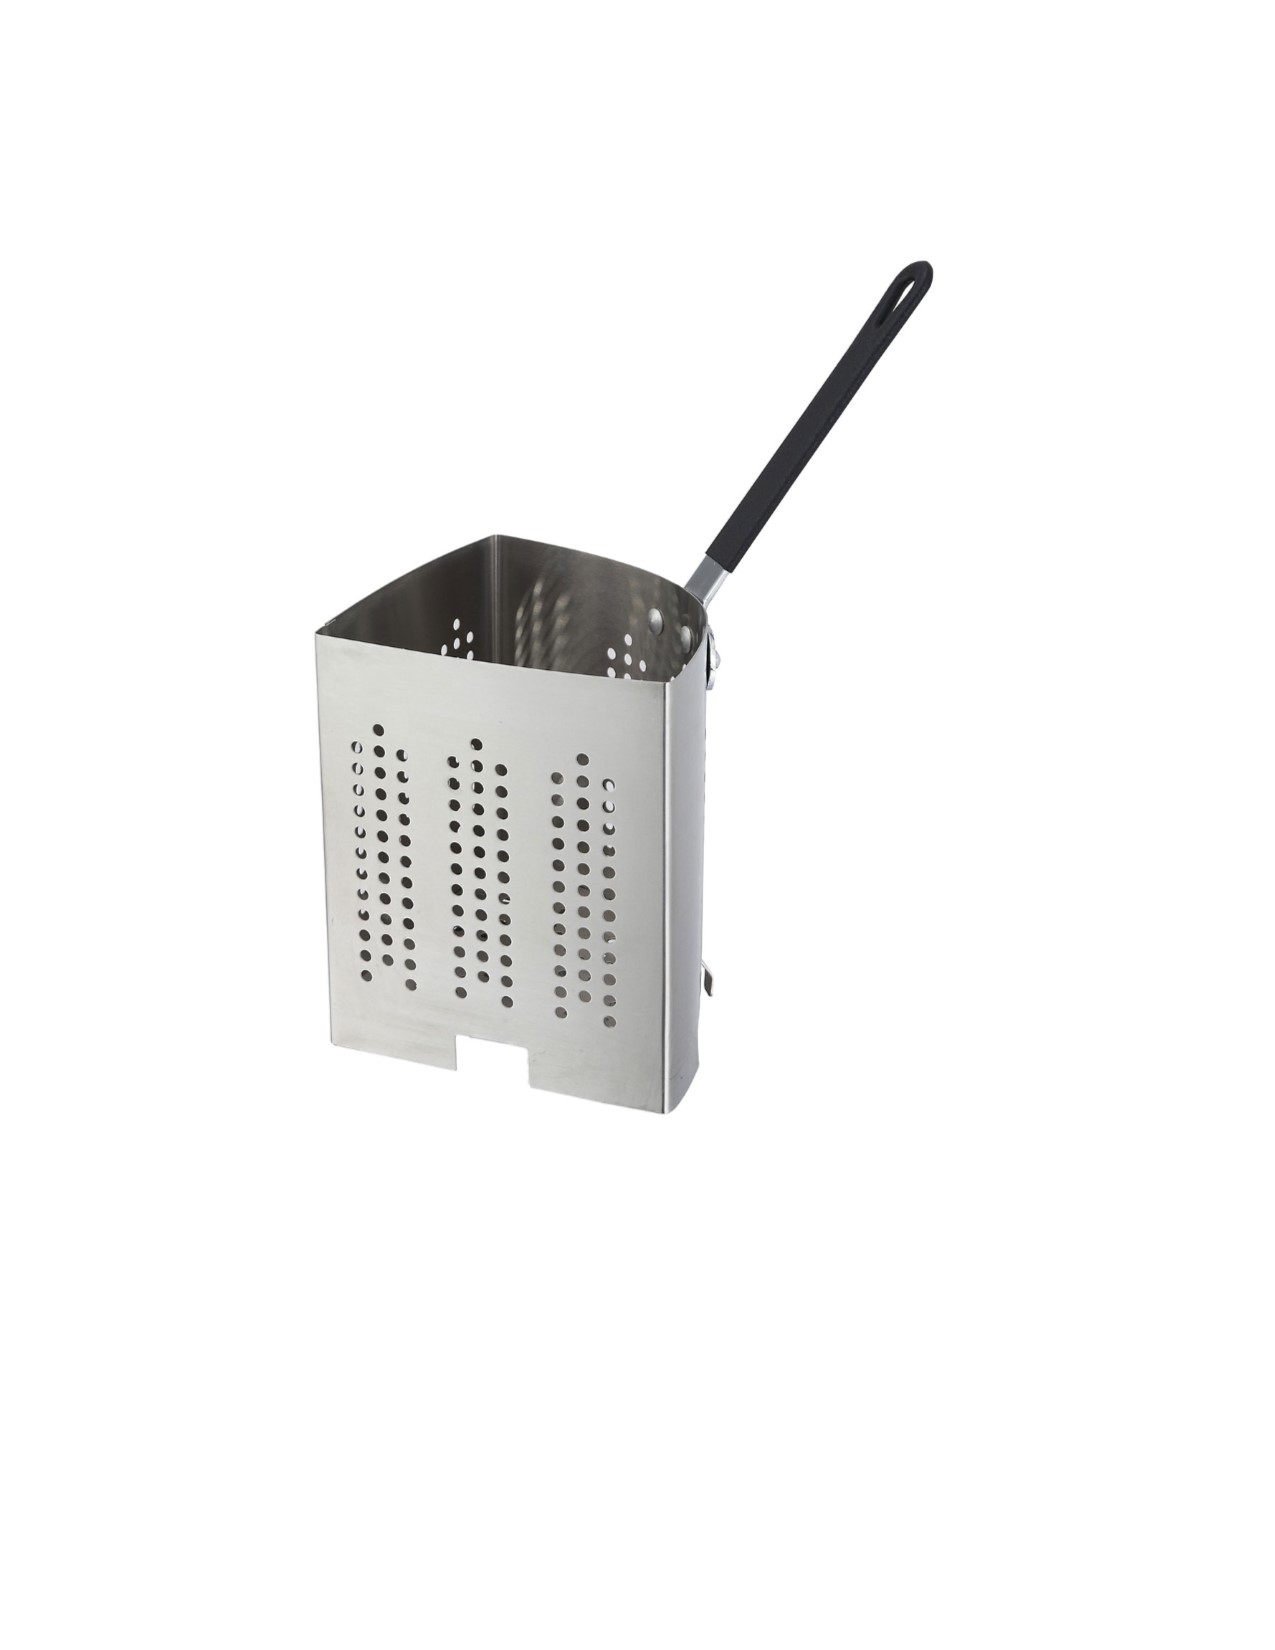 2904-42 Winco Inset, 1/4 size, for 20 qt. pasta cooker, stainless steel